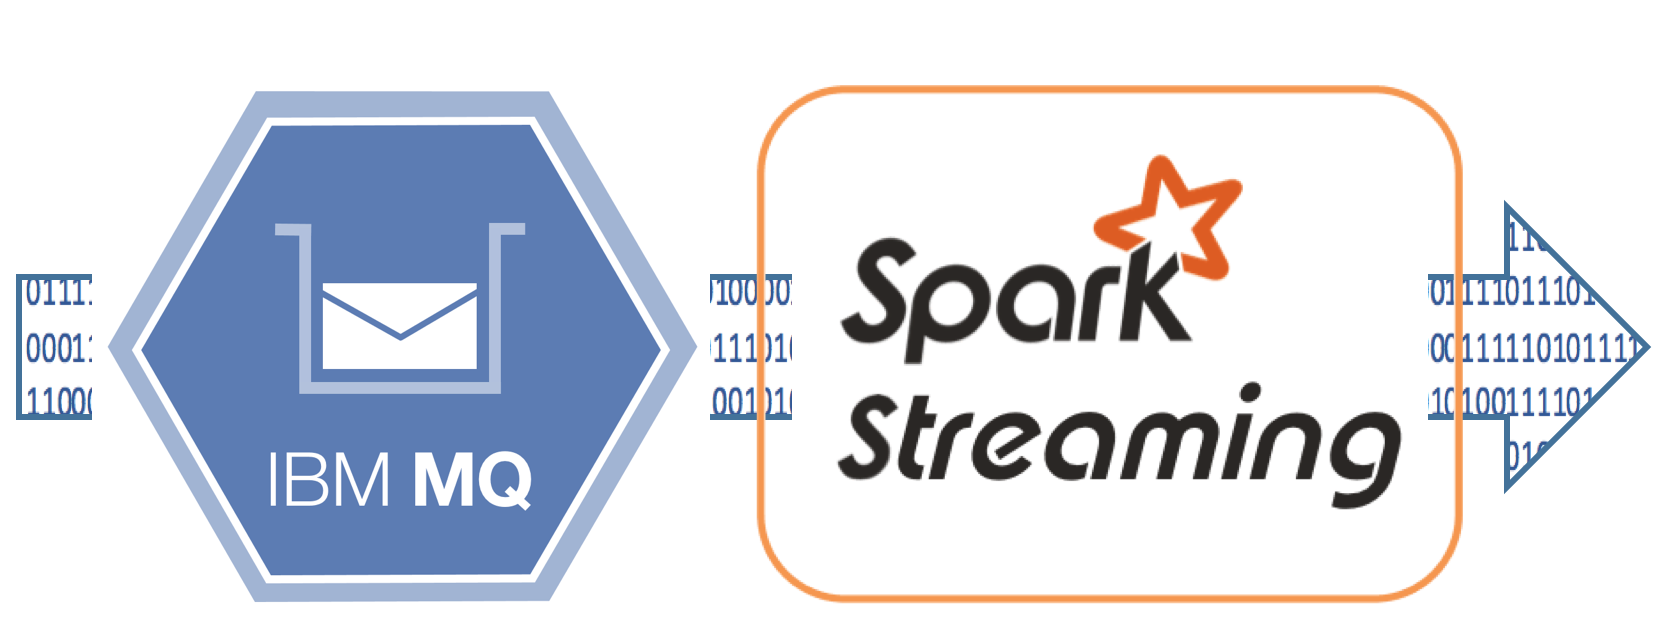 Processing Data from MQ with Spark Streaming: Part 1